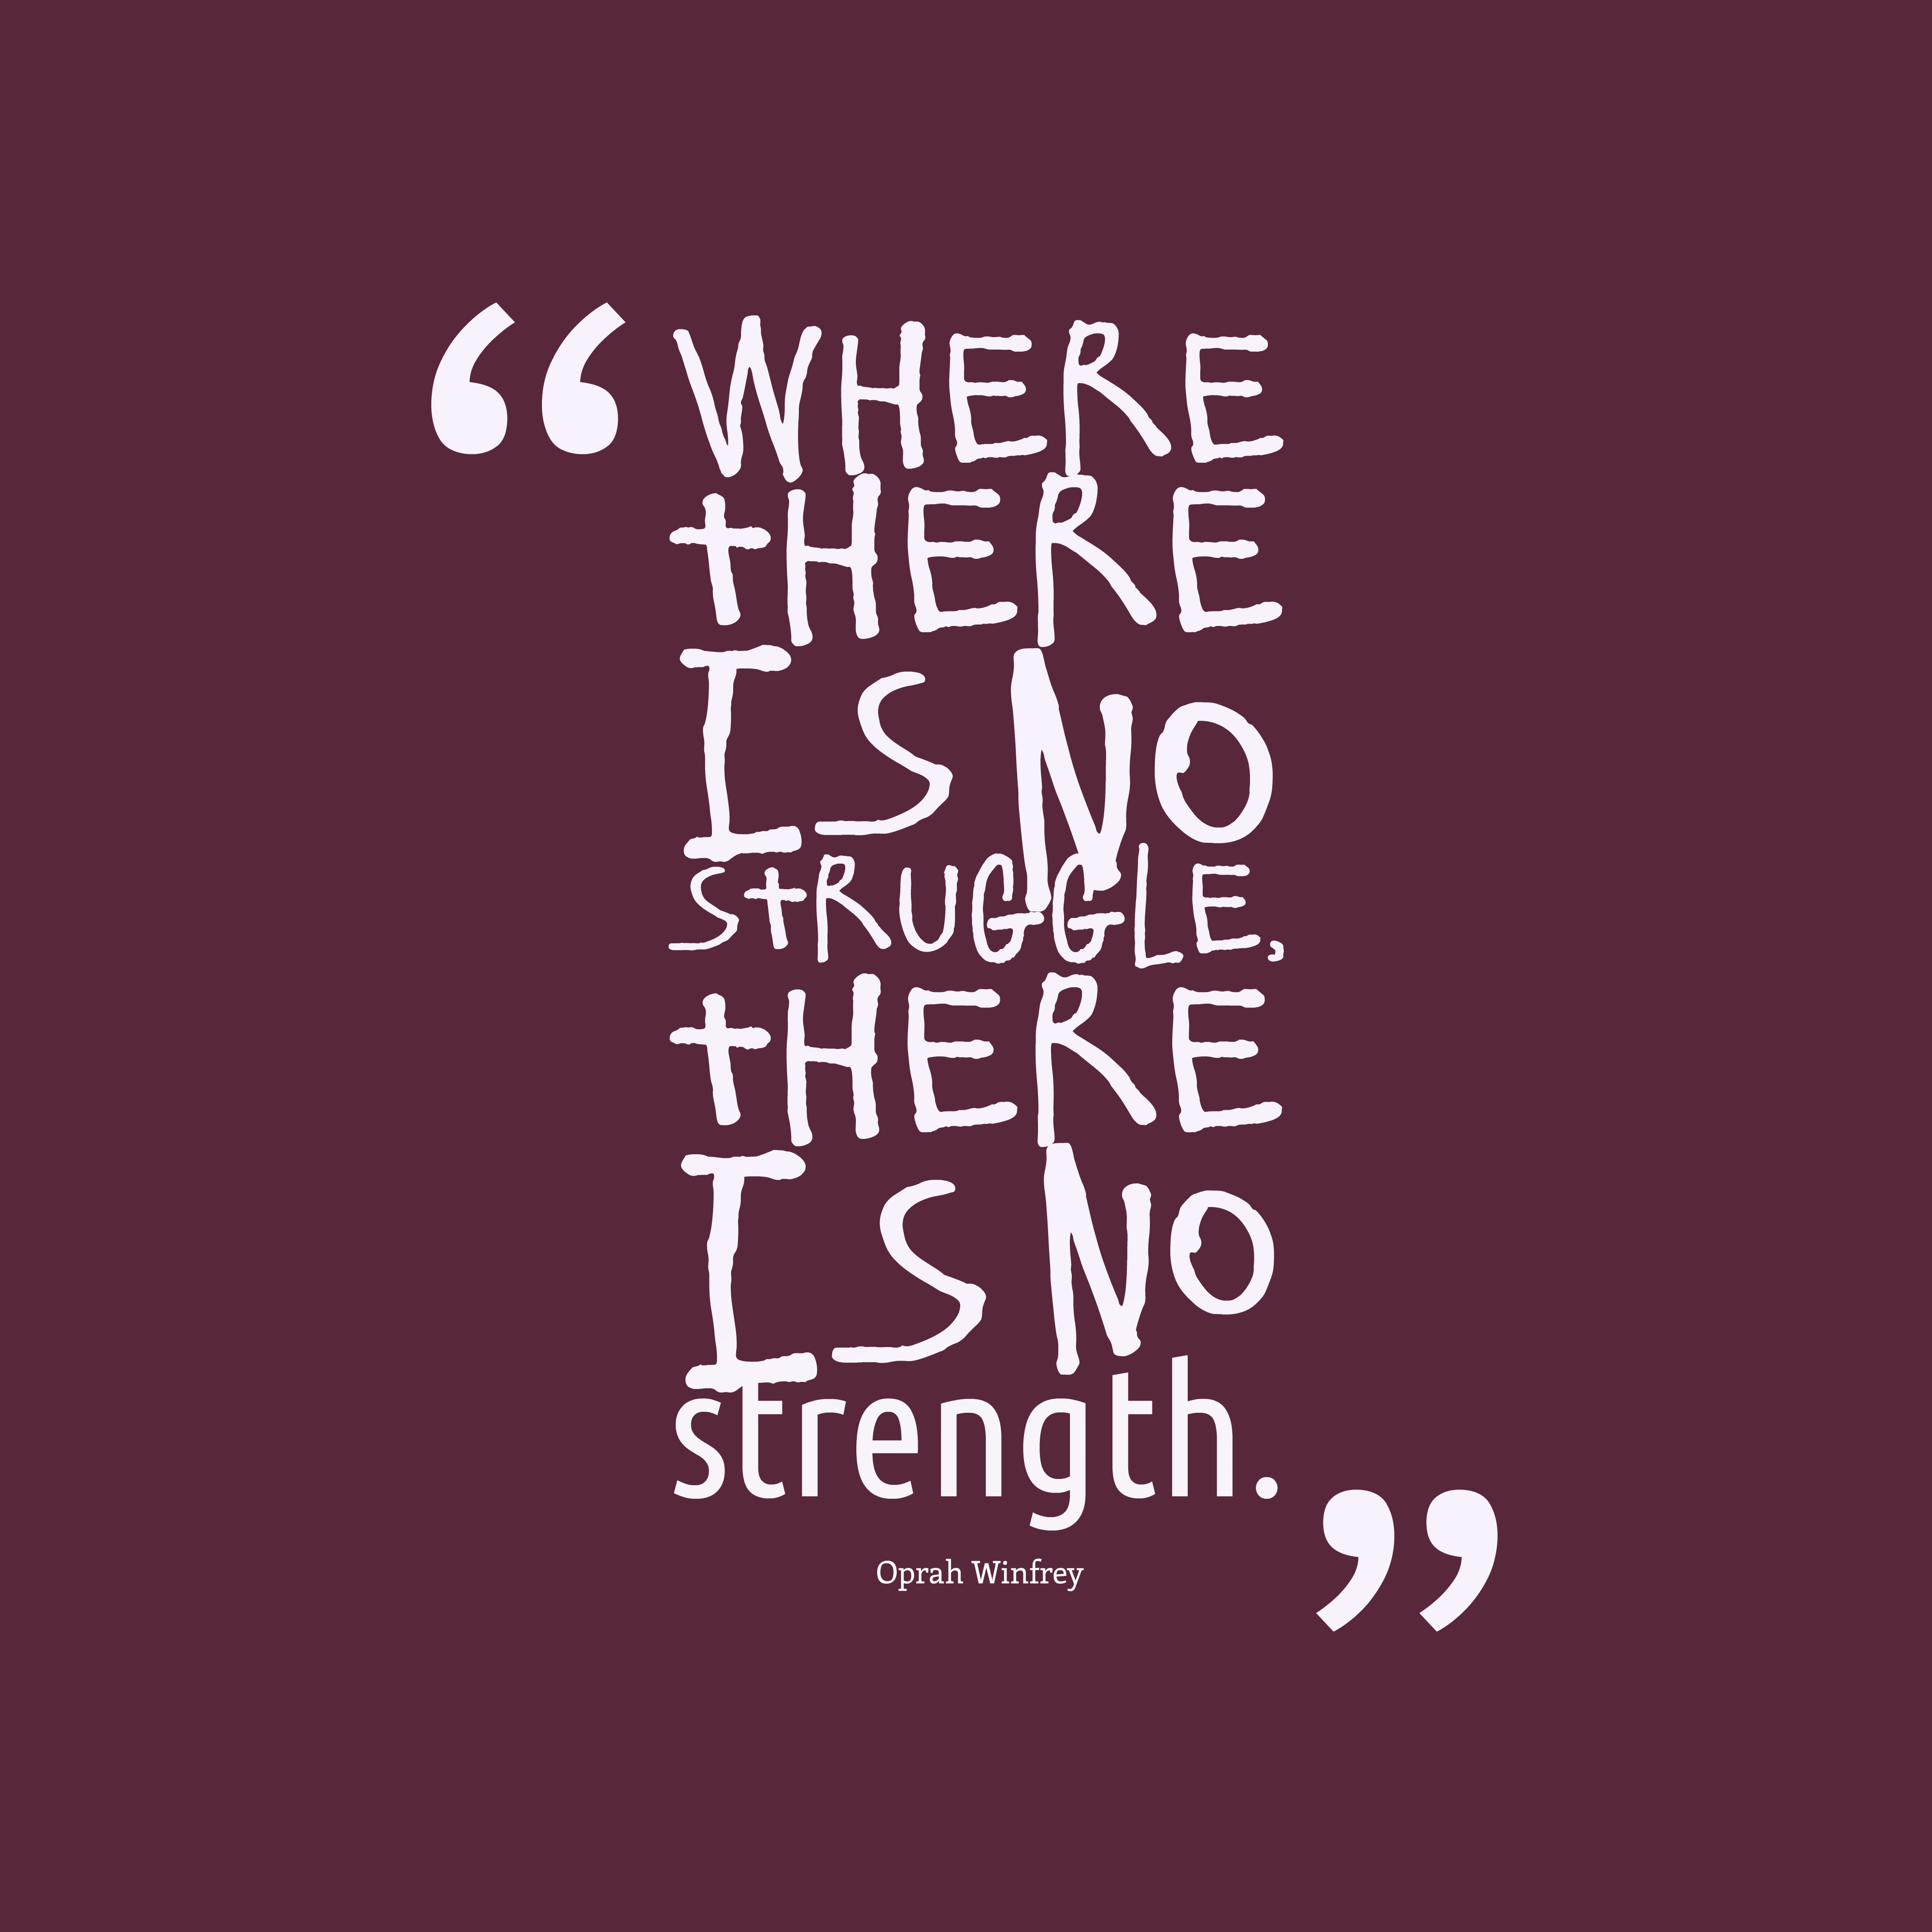 Quotes About Love Struggle : struggle quotes 1 Quotes